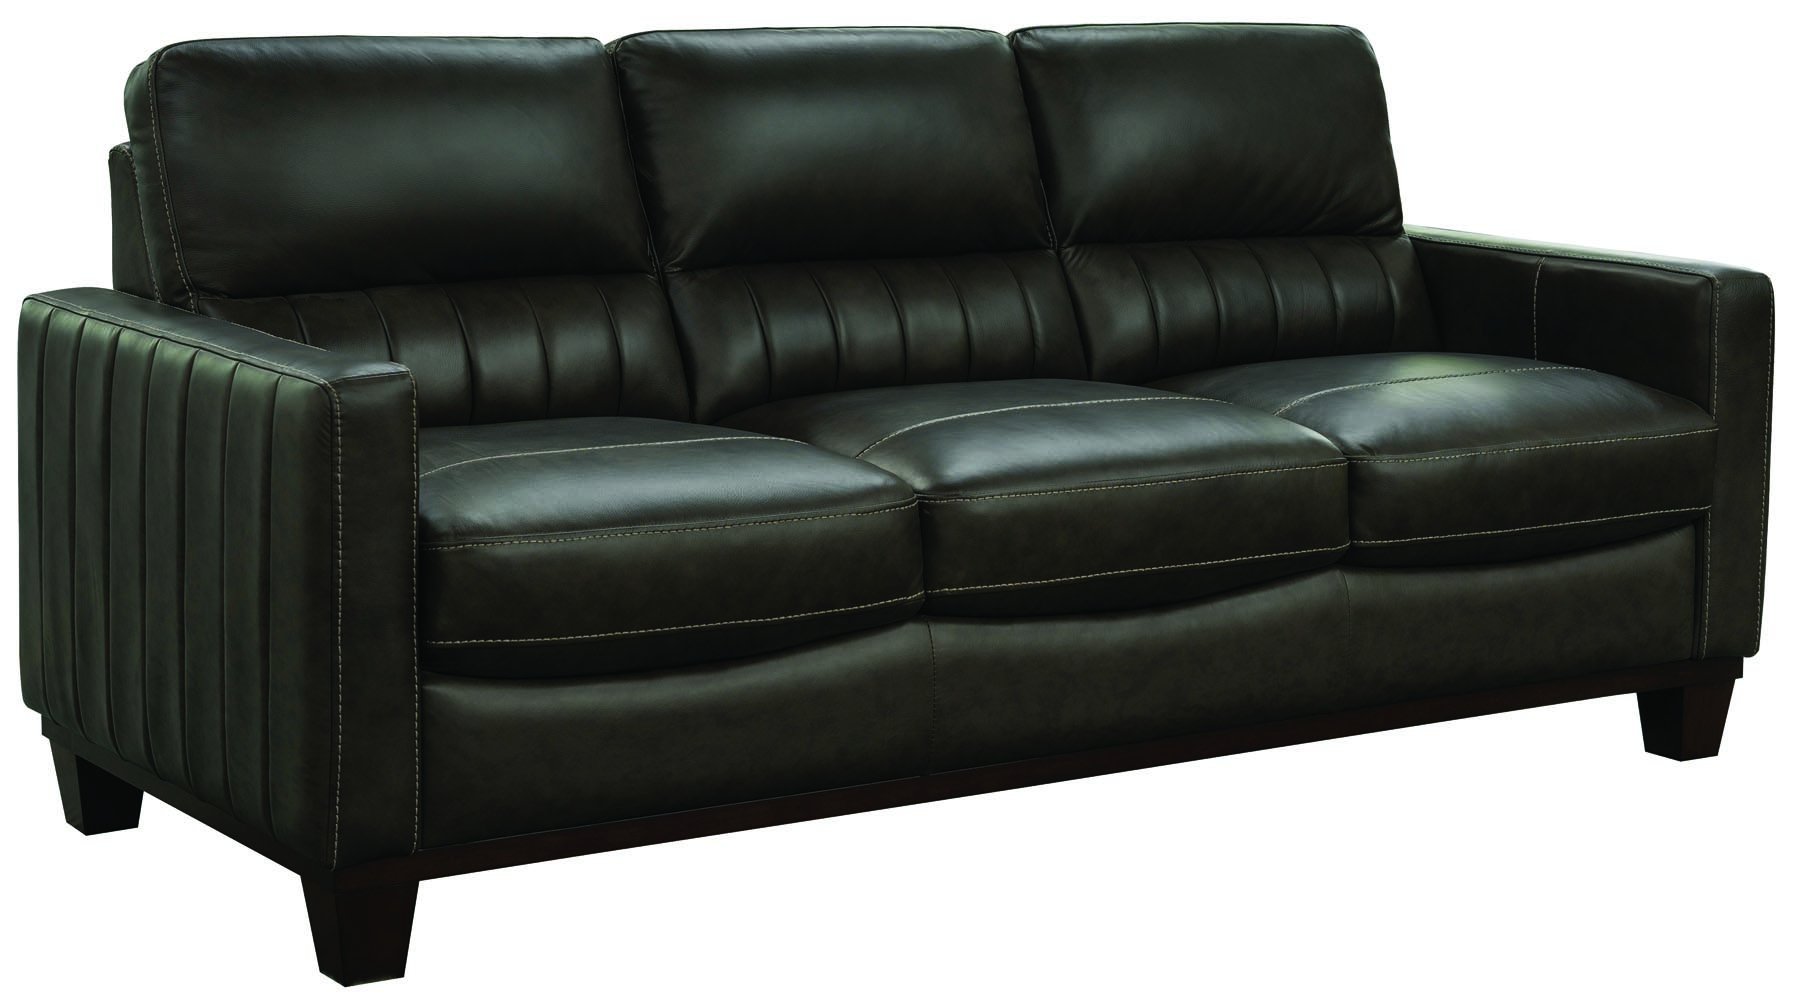 Furniture Chevy Black Leather Sofa